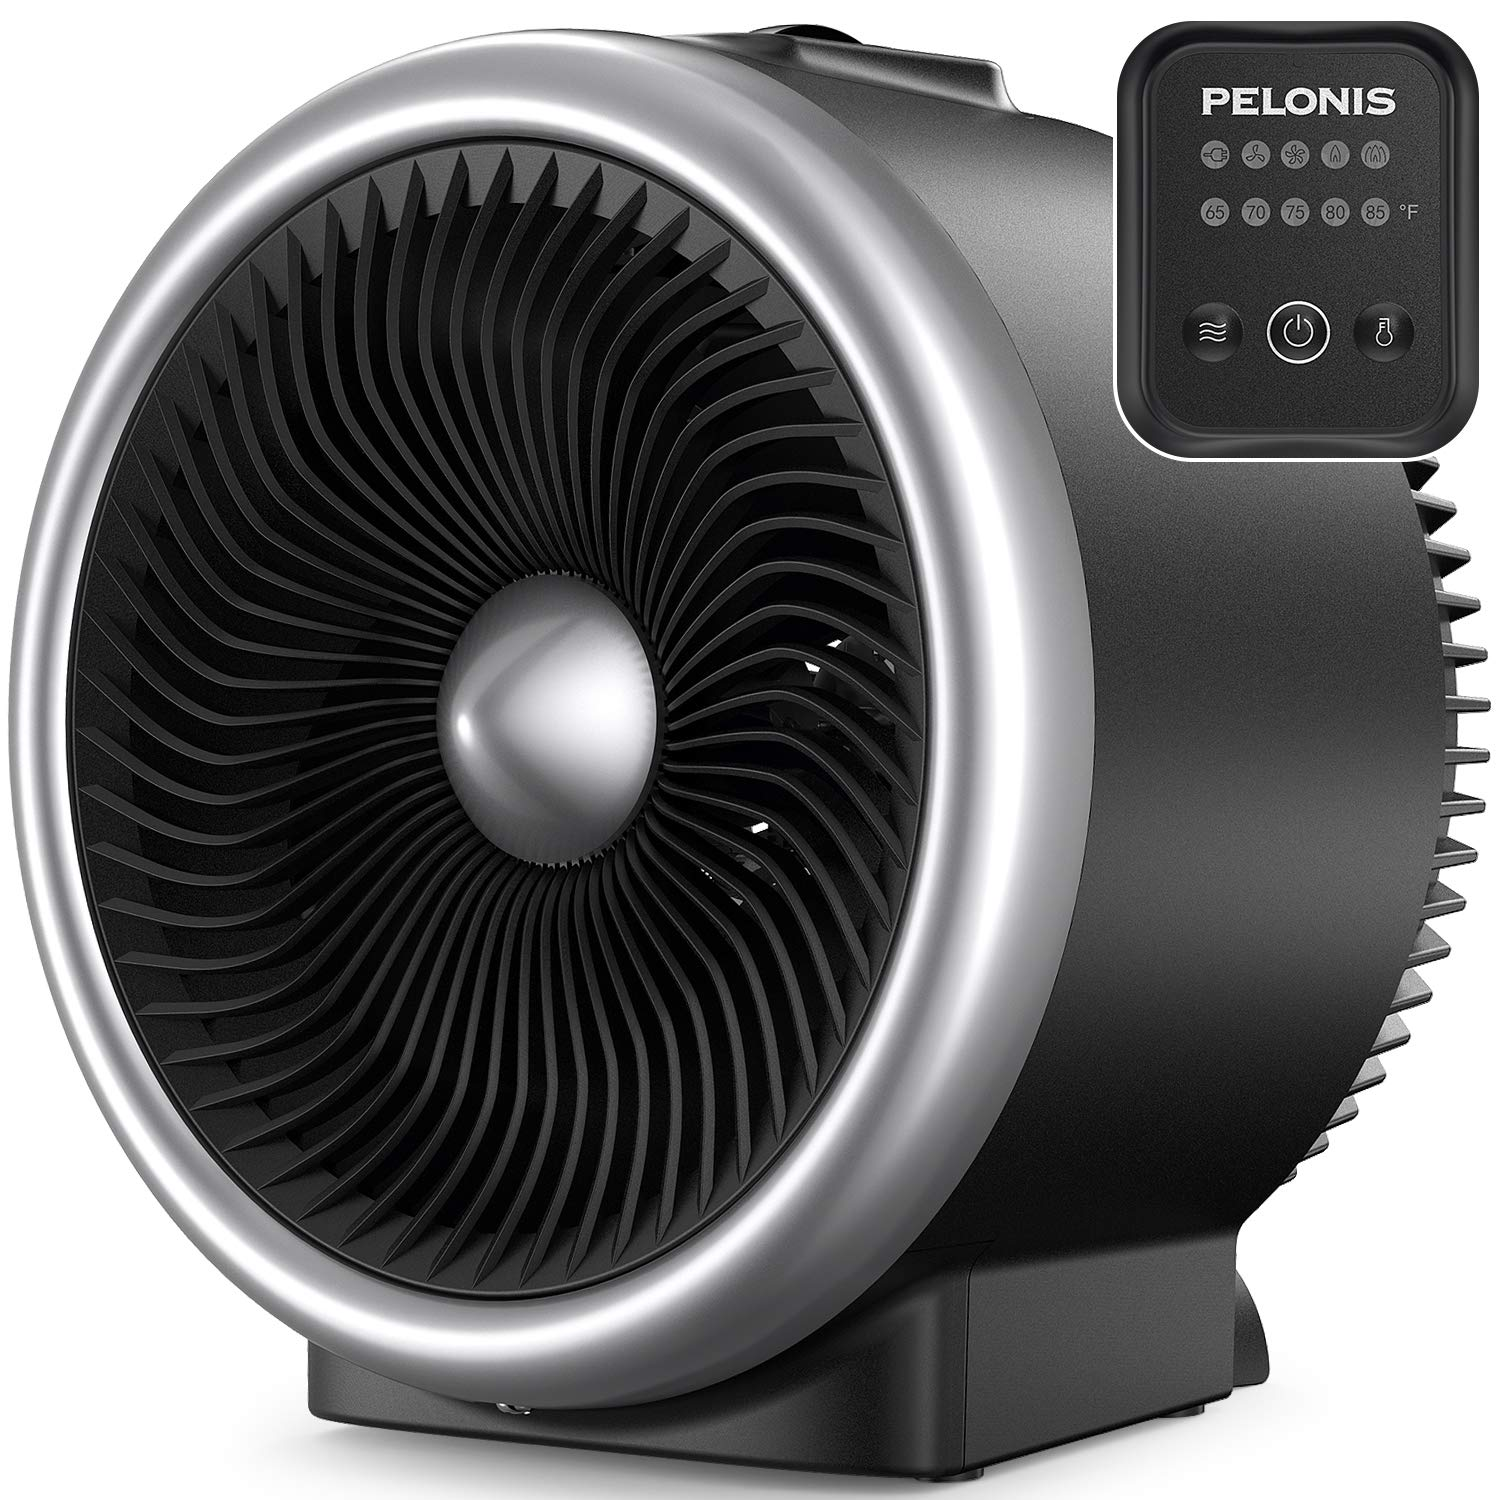 PELONIS PSH750S Space Heater with Air Circulator Fan, 2-In-1 Vortex Heater With Electronic Adjustable Thermostat, ETL Listed, Auto Tip-over & Overheat Protection for All Seasons & Whole Room Use